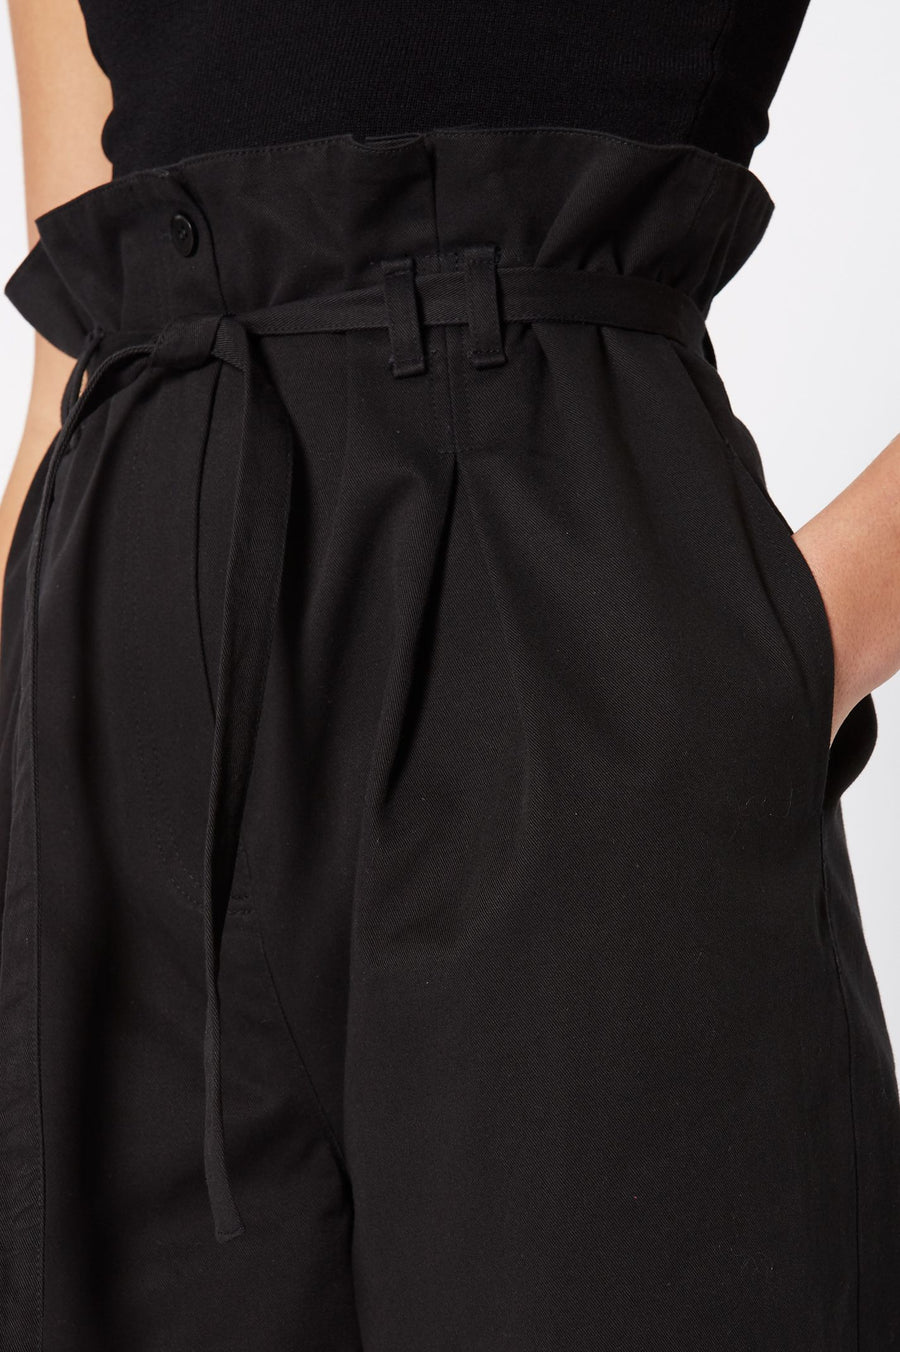 Pleat Front Trouser Black, High Rise, Black Color, Welt Pockets, Side Seam Pockets